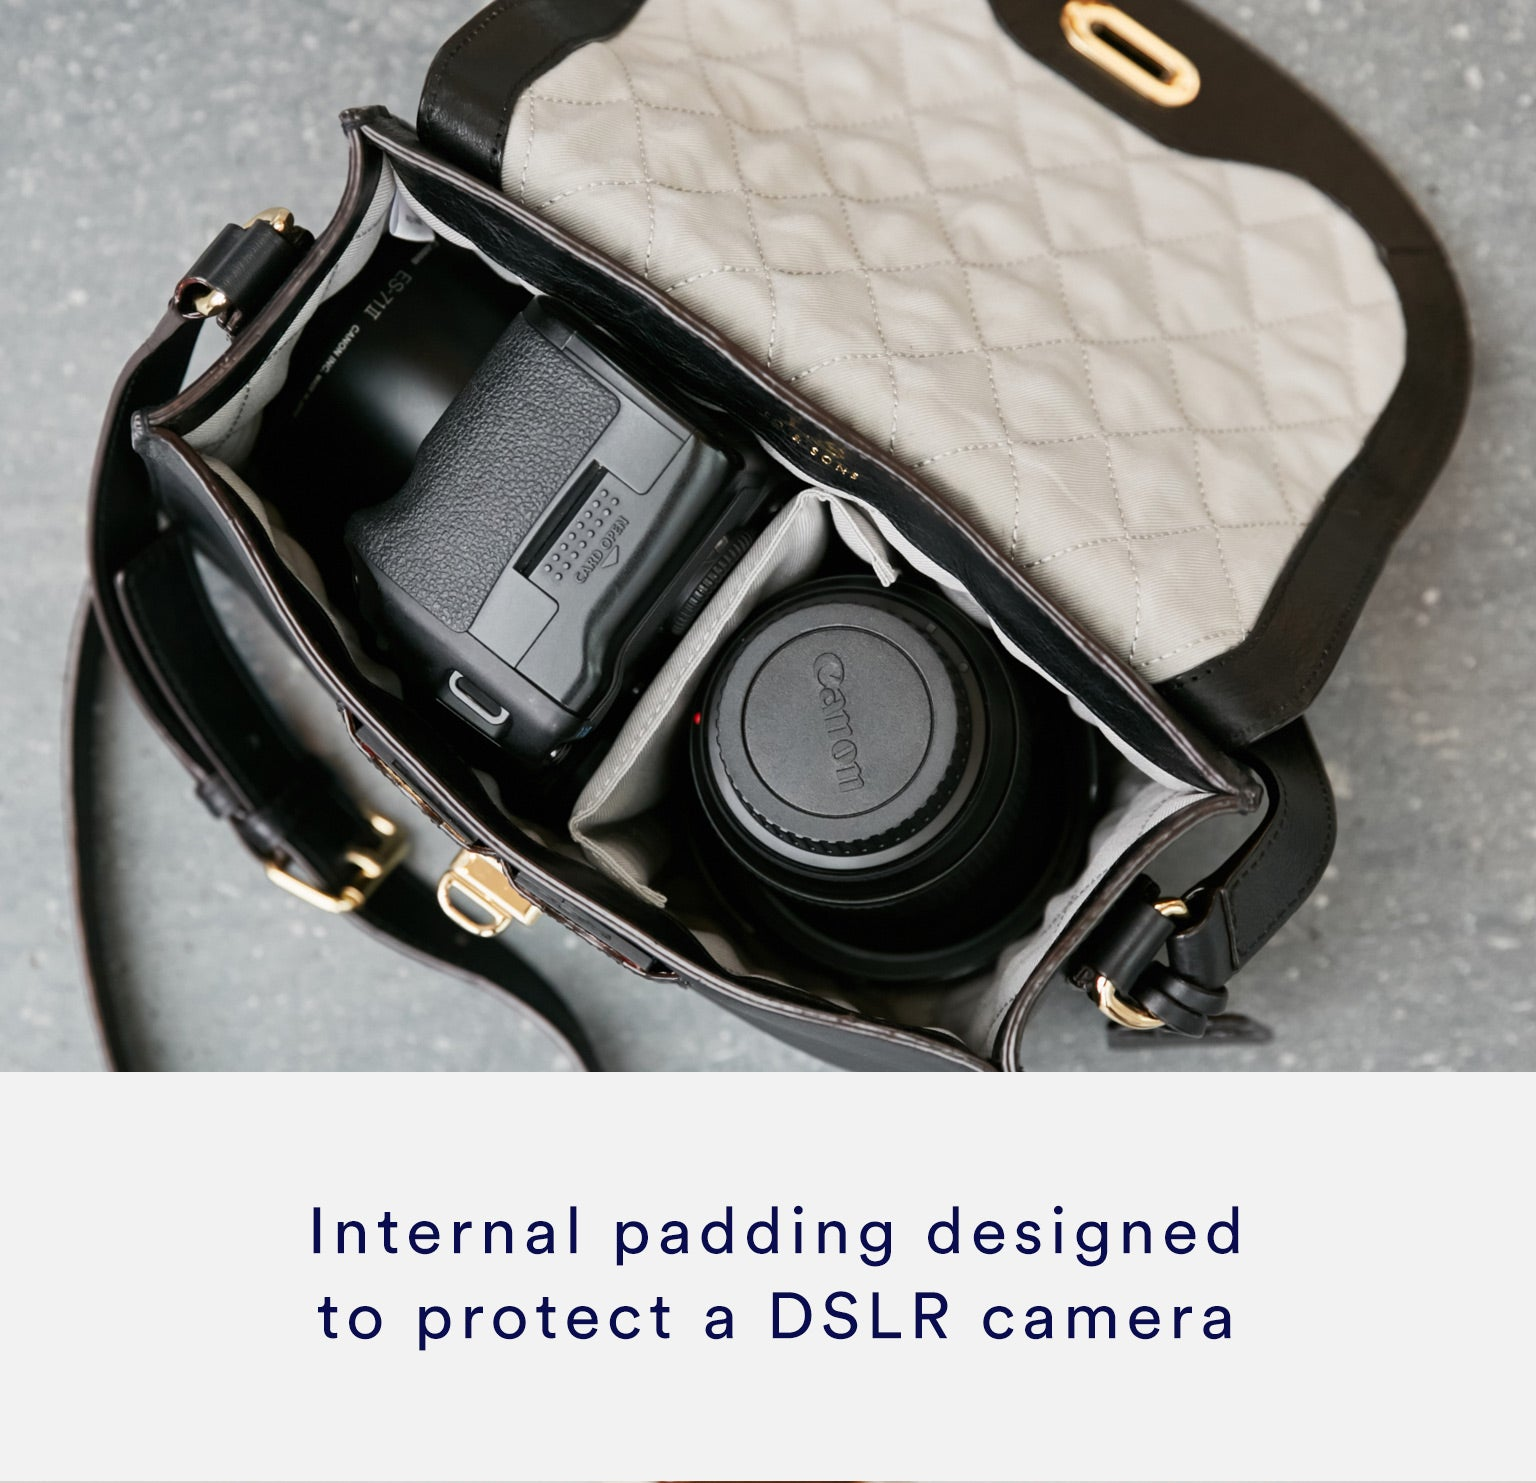 The Claremont camera bag, made with internal padding designed to protect a DSLR camera